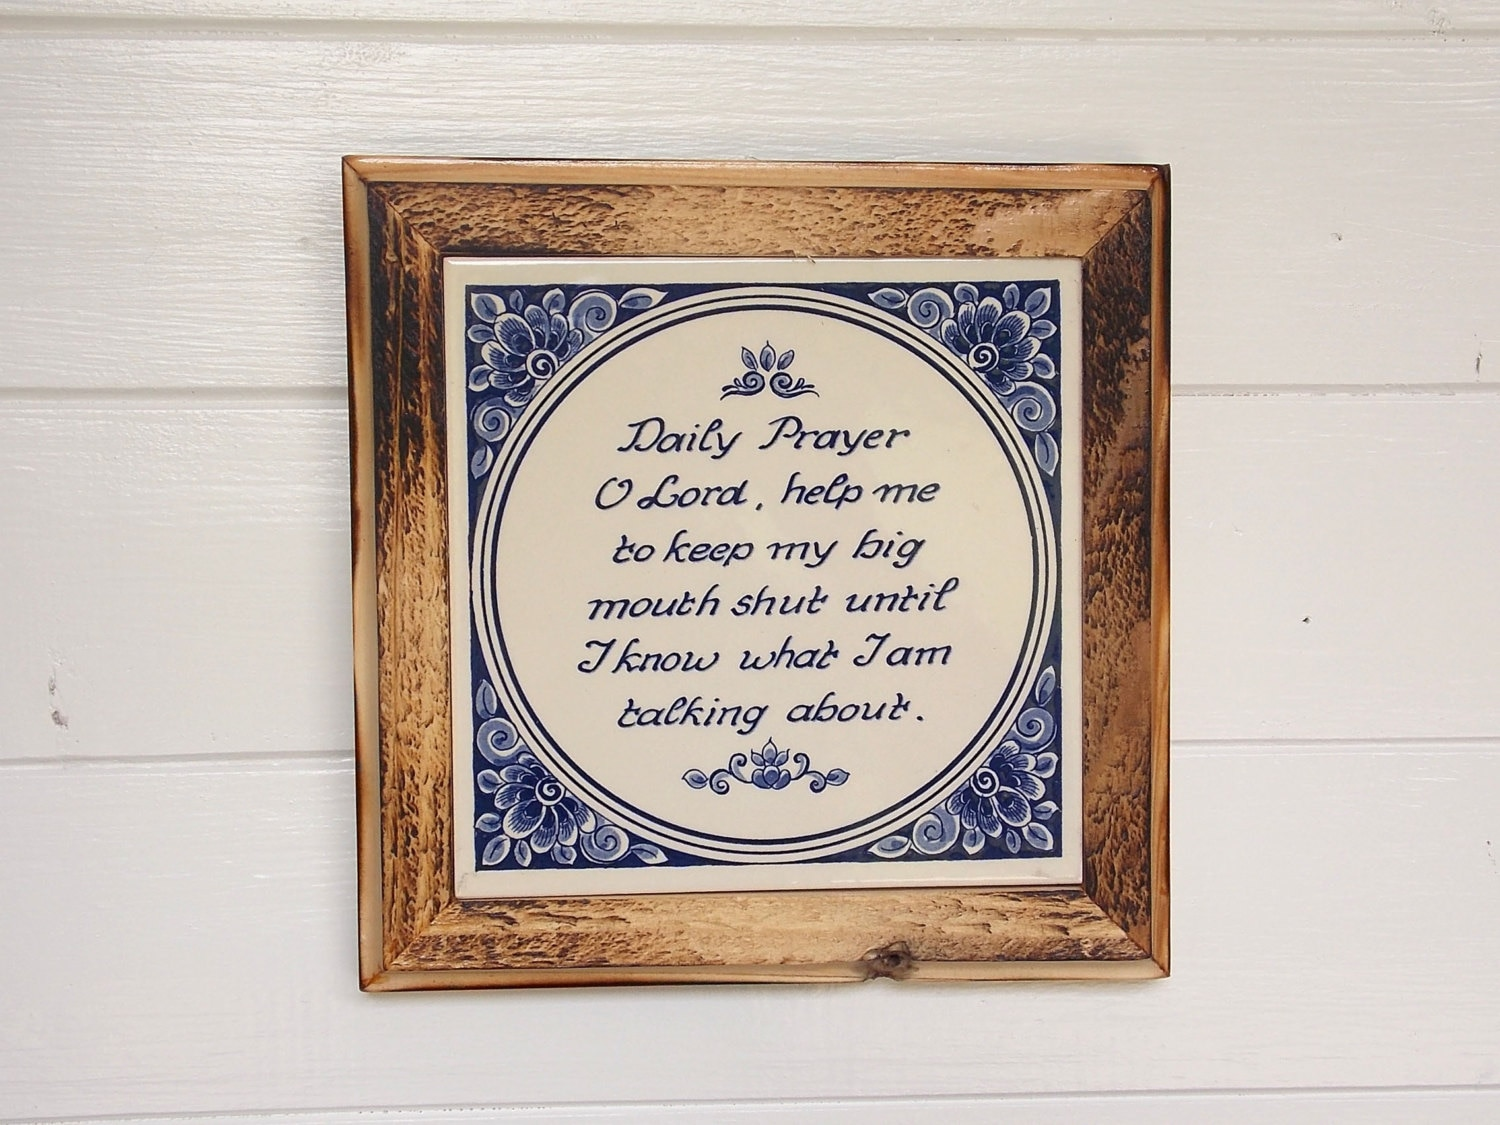 Wall Plaques Enchanting Humorous Wall Plaques Humorous Wall Art Daily Prayer. Design Ideas